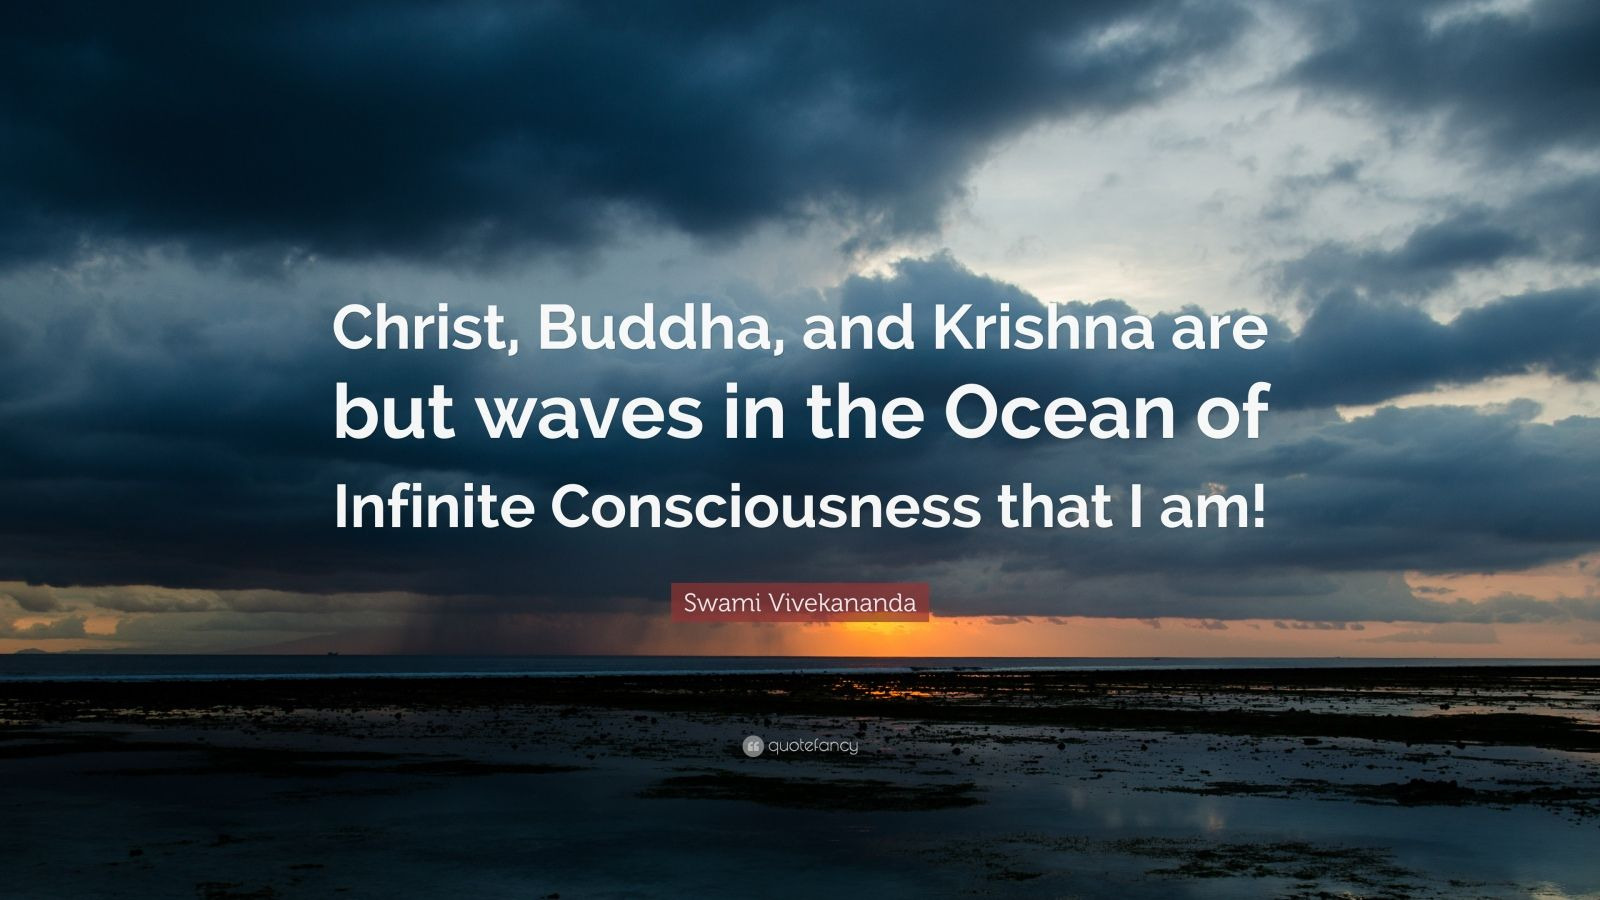 """Swami Vivekananda Quote: """"Christ, Buddha, and Krishna are but waves in the Ocean of Infinite Consciousness that I am!"""""""